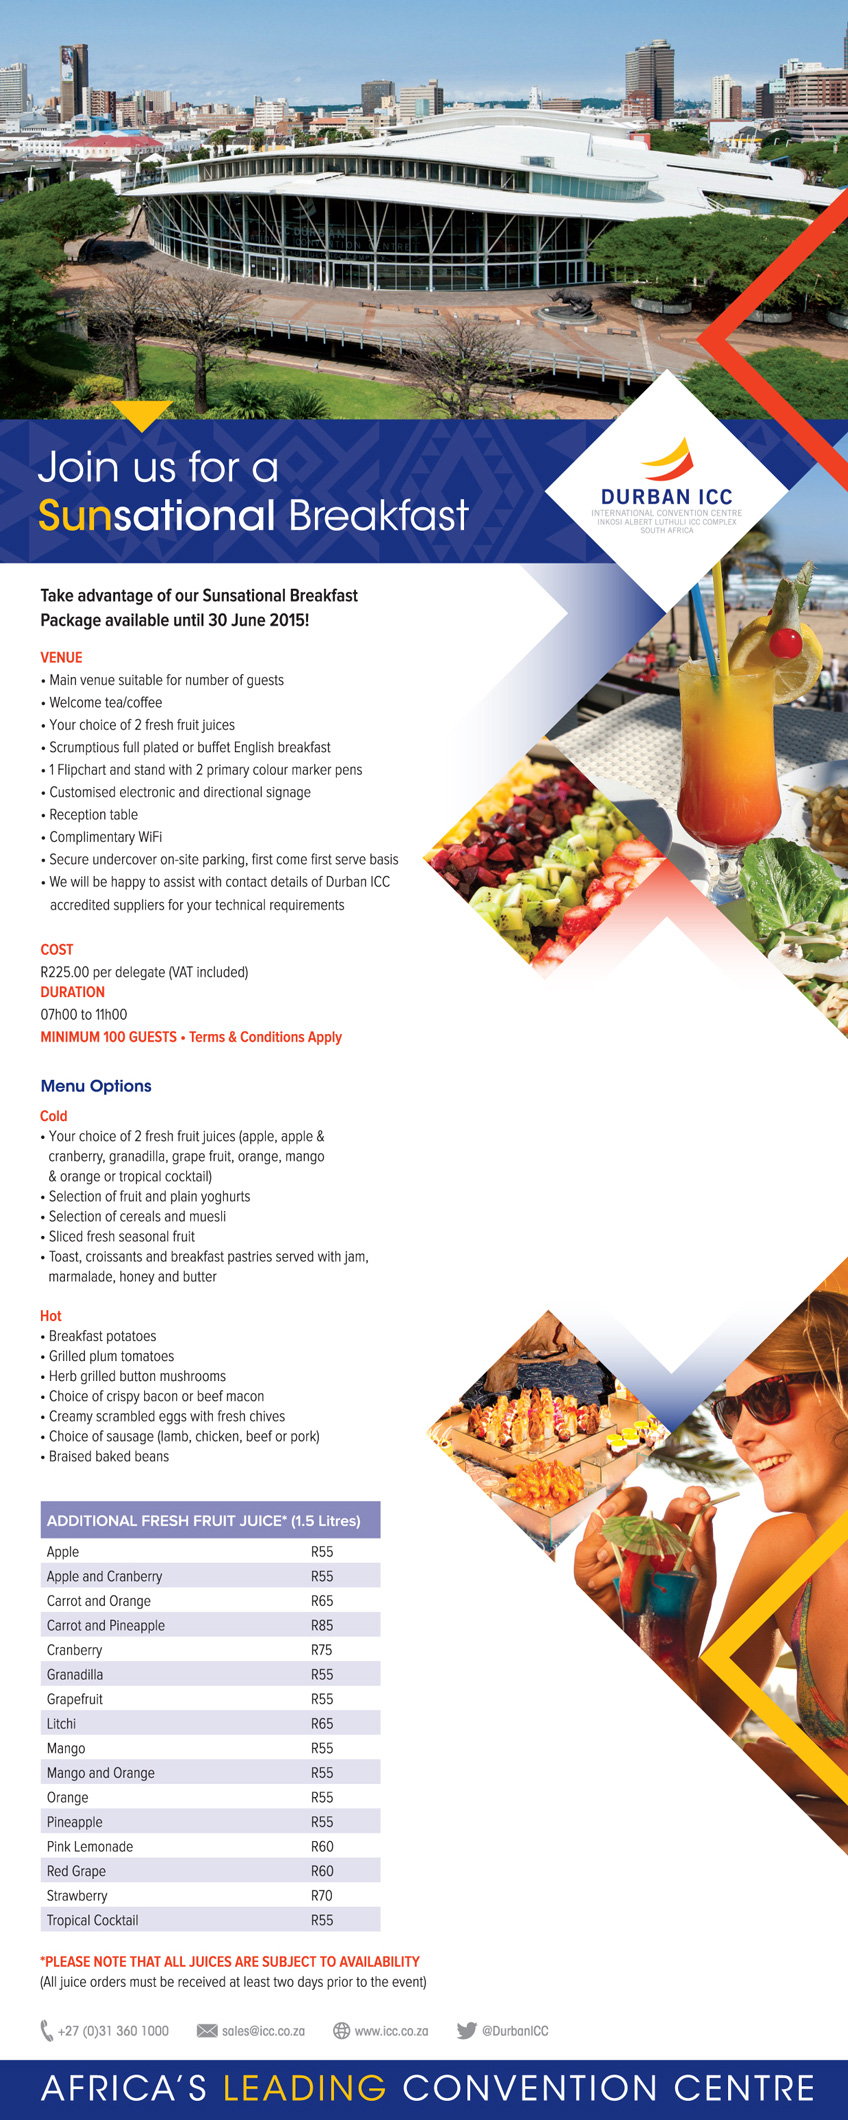 31589_Durban ICC_A4_Breakfast-Package_Full2